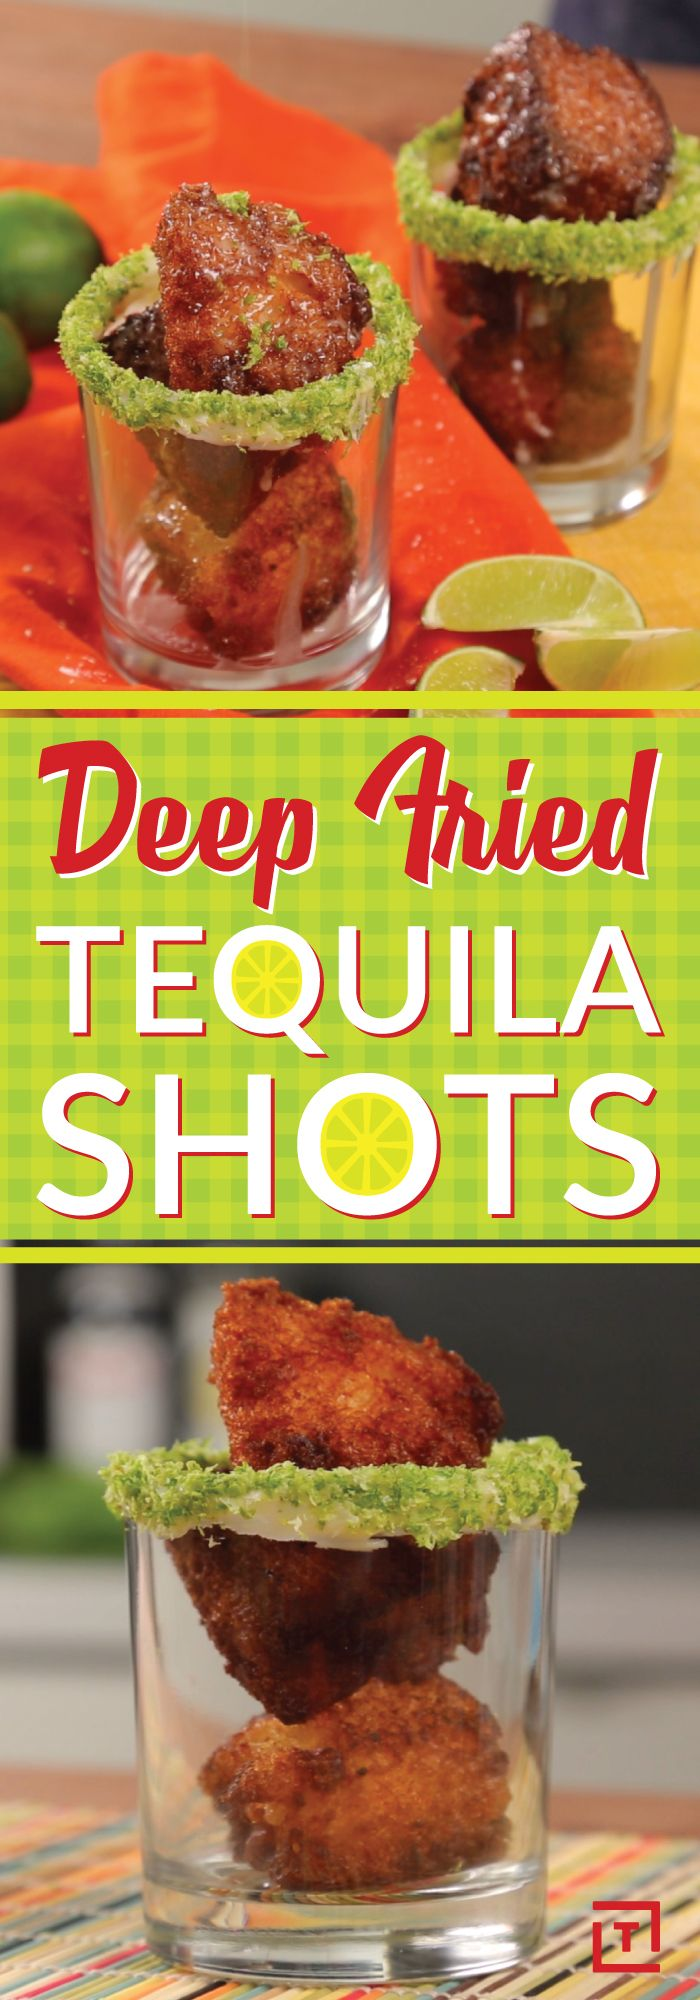 Deep-fried tequila shots are real, and they're spectacular